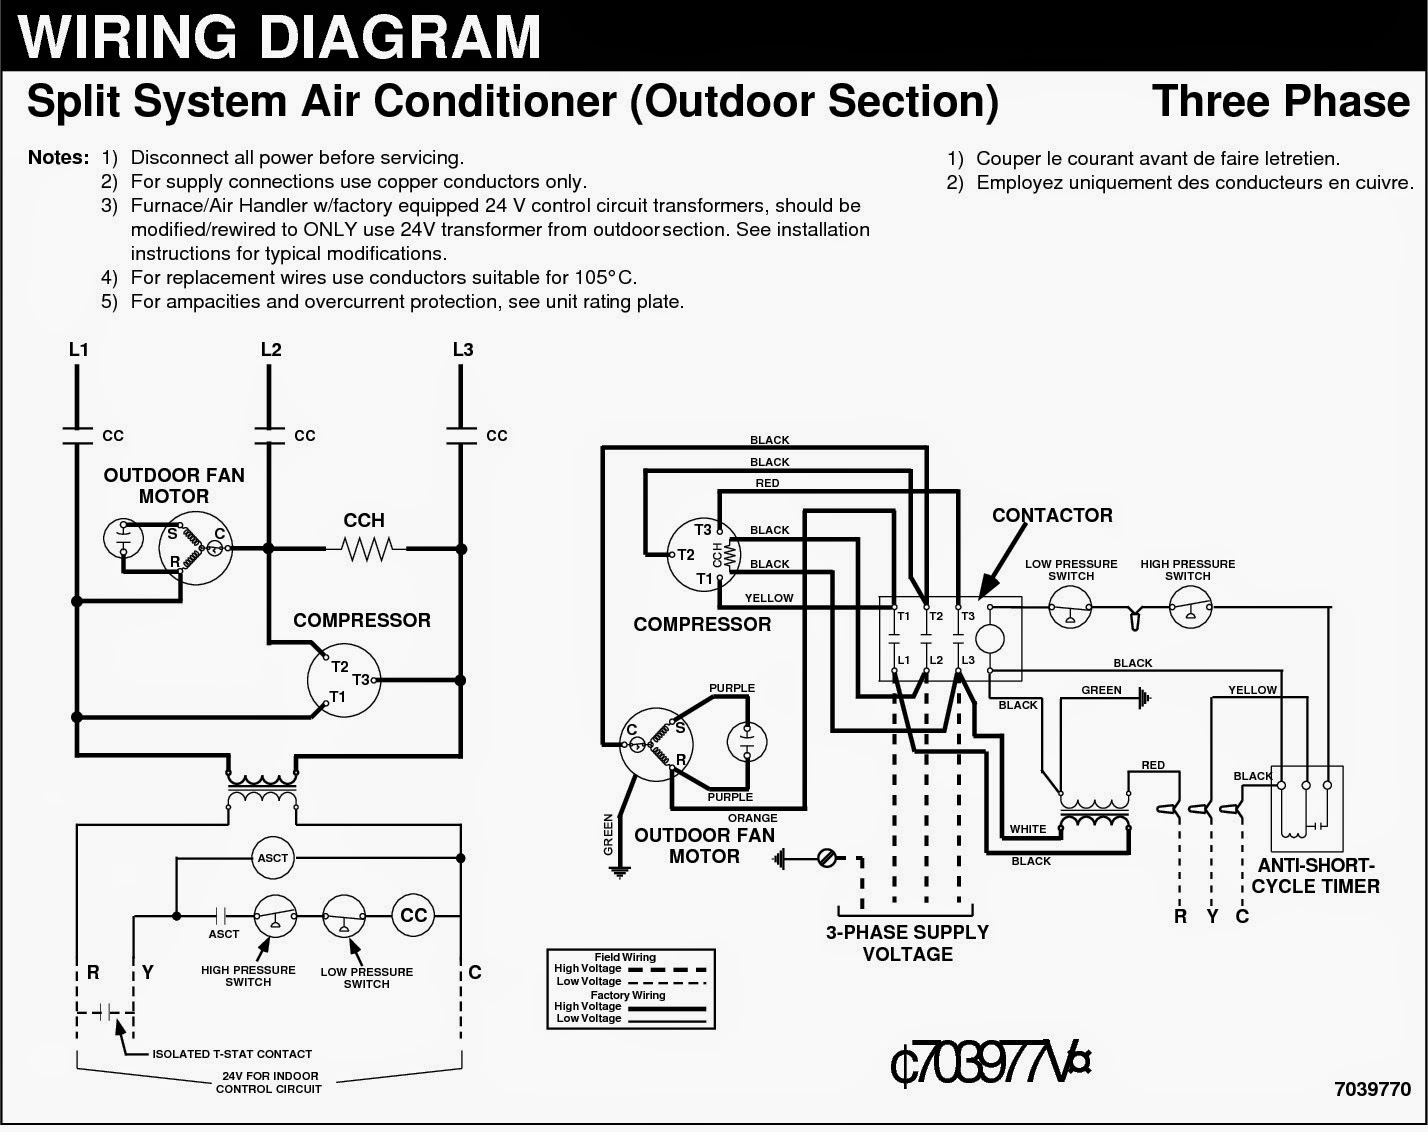 3+phase ac compressor wiring diagram bitzer compressor wiring diagram single phase refrigeration compressor wiring diagram at soozxer.org